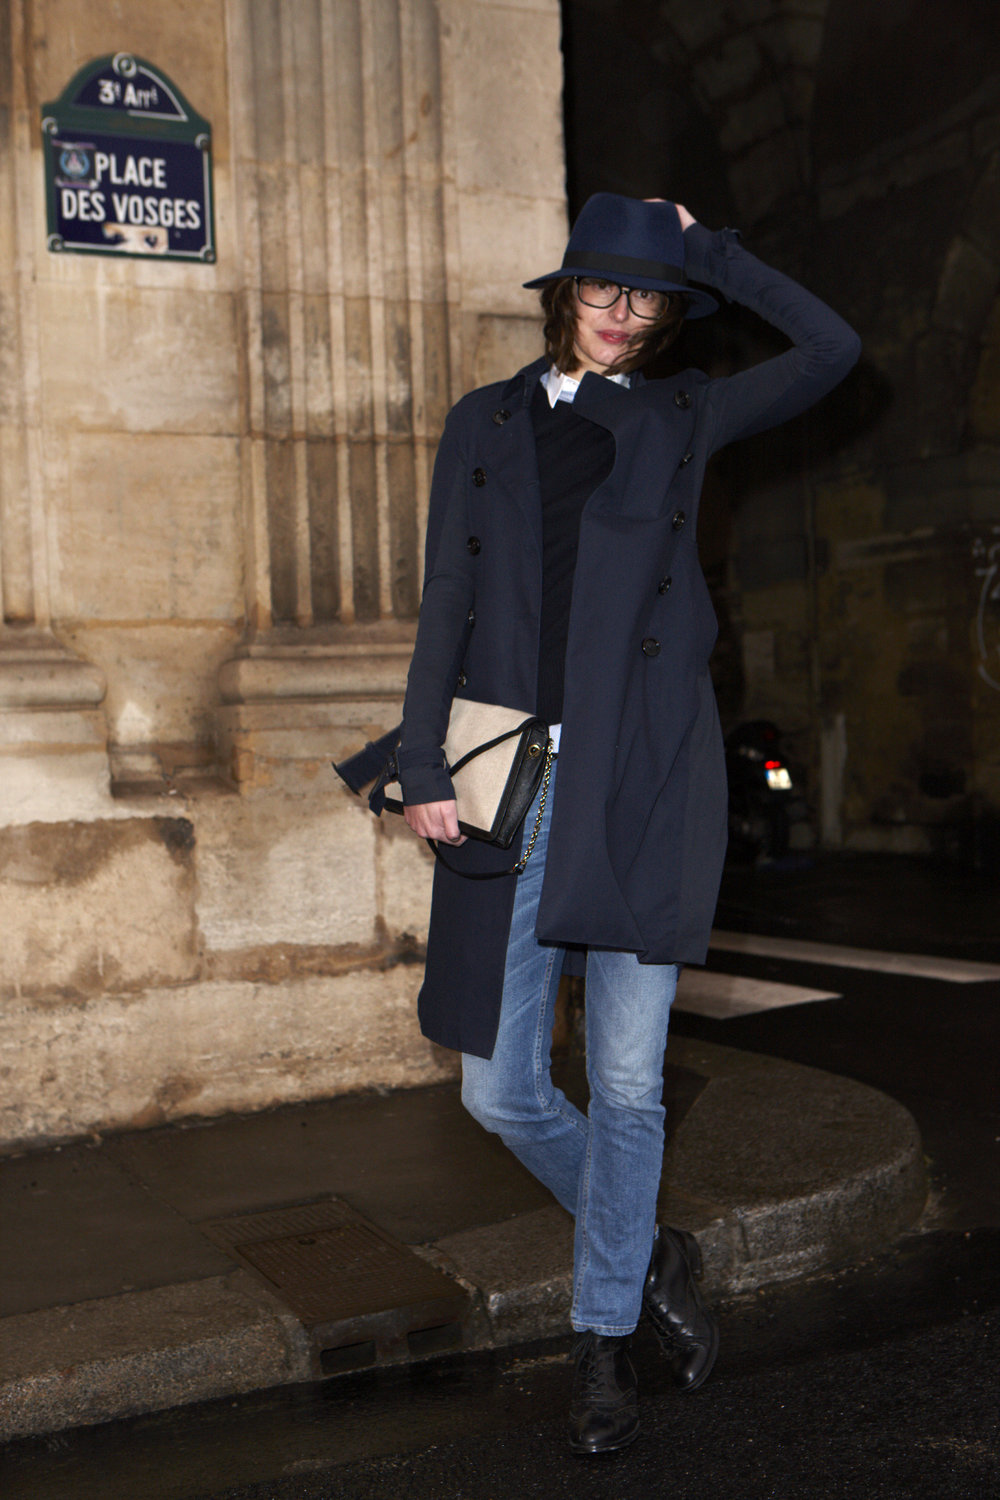 Burberry / Art of the Trench / Virginie Muys